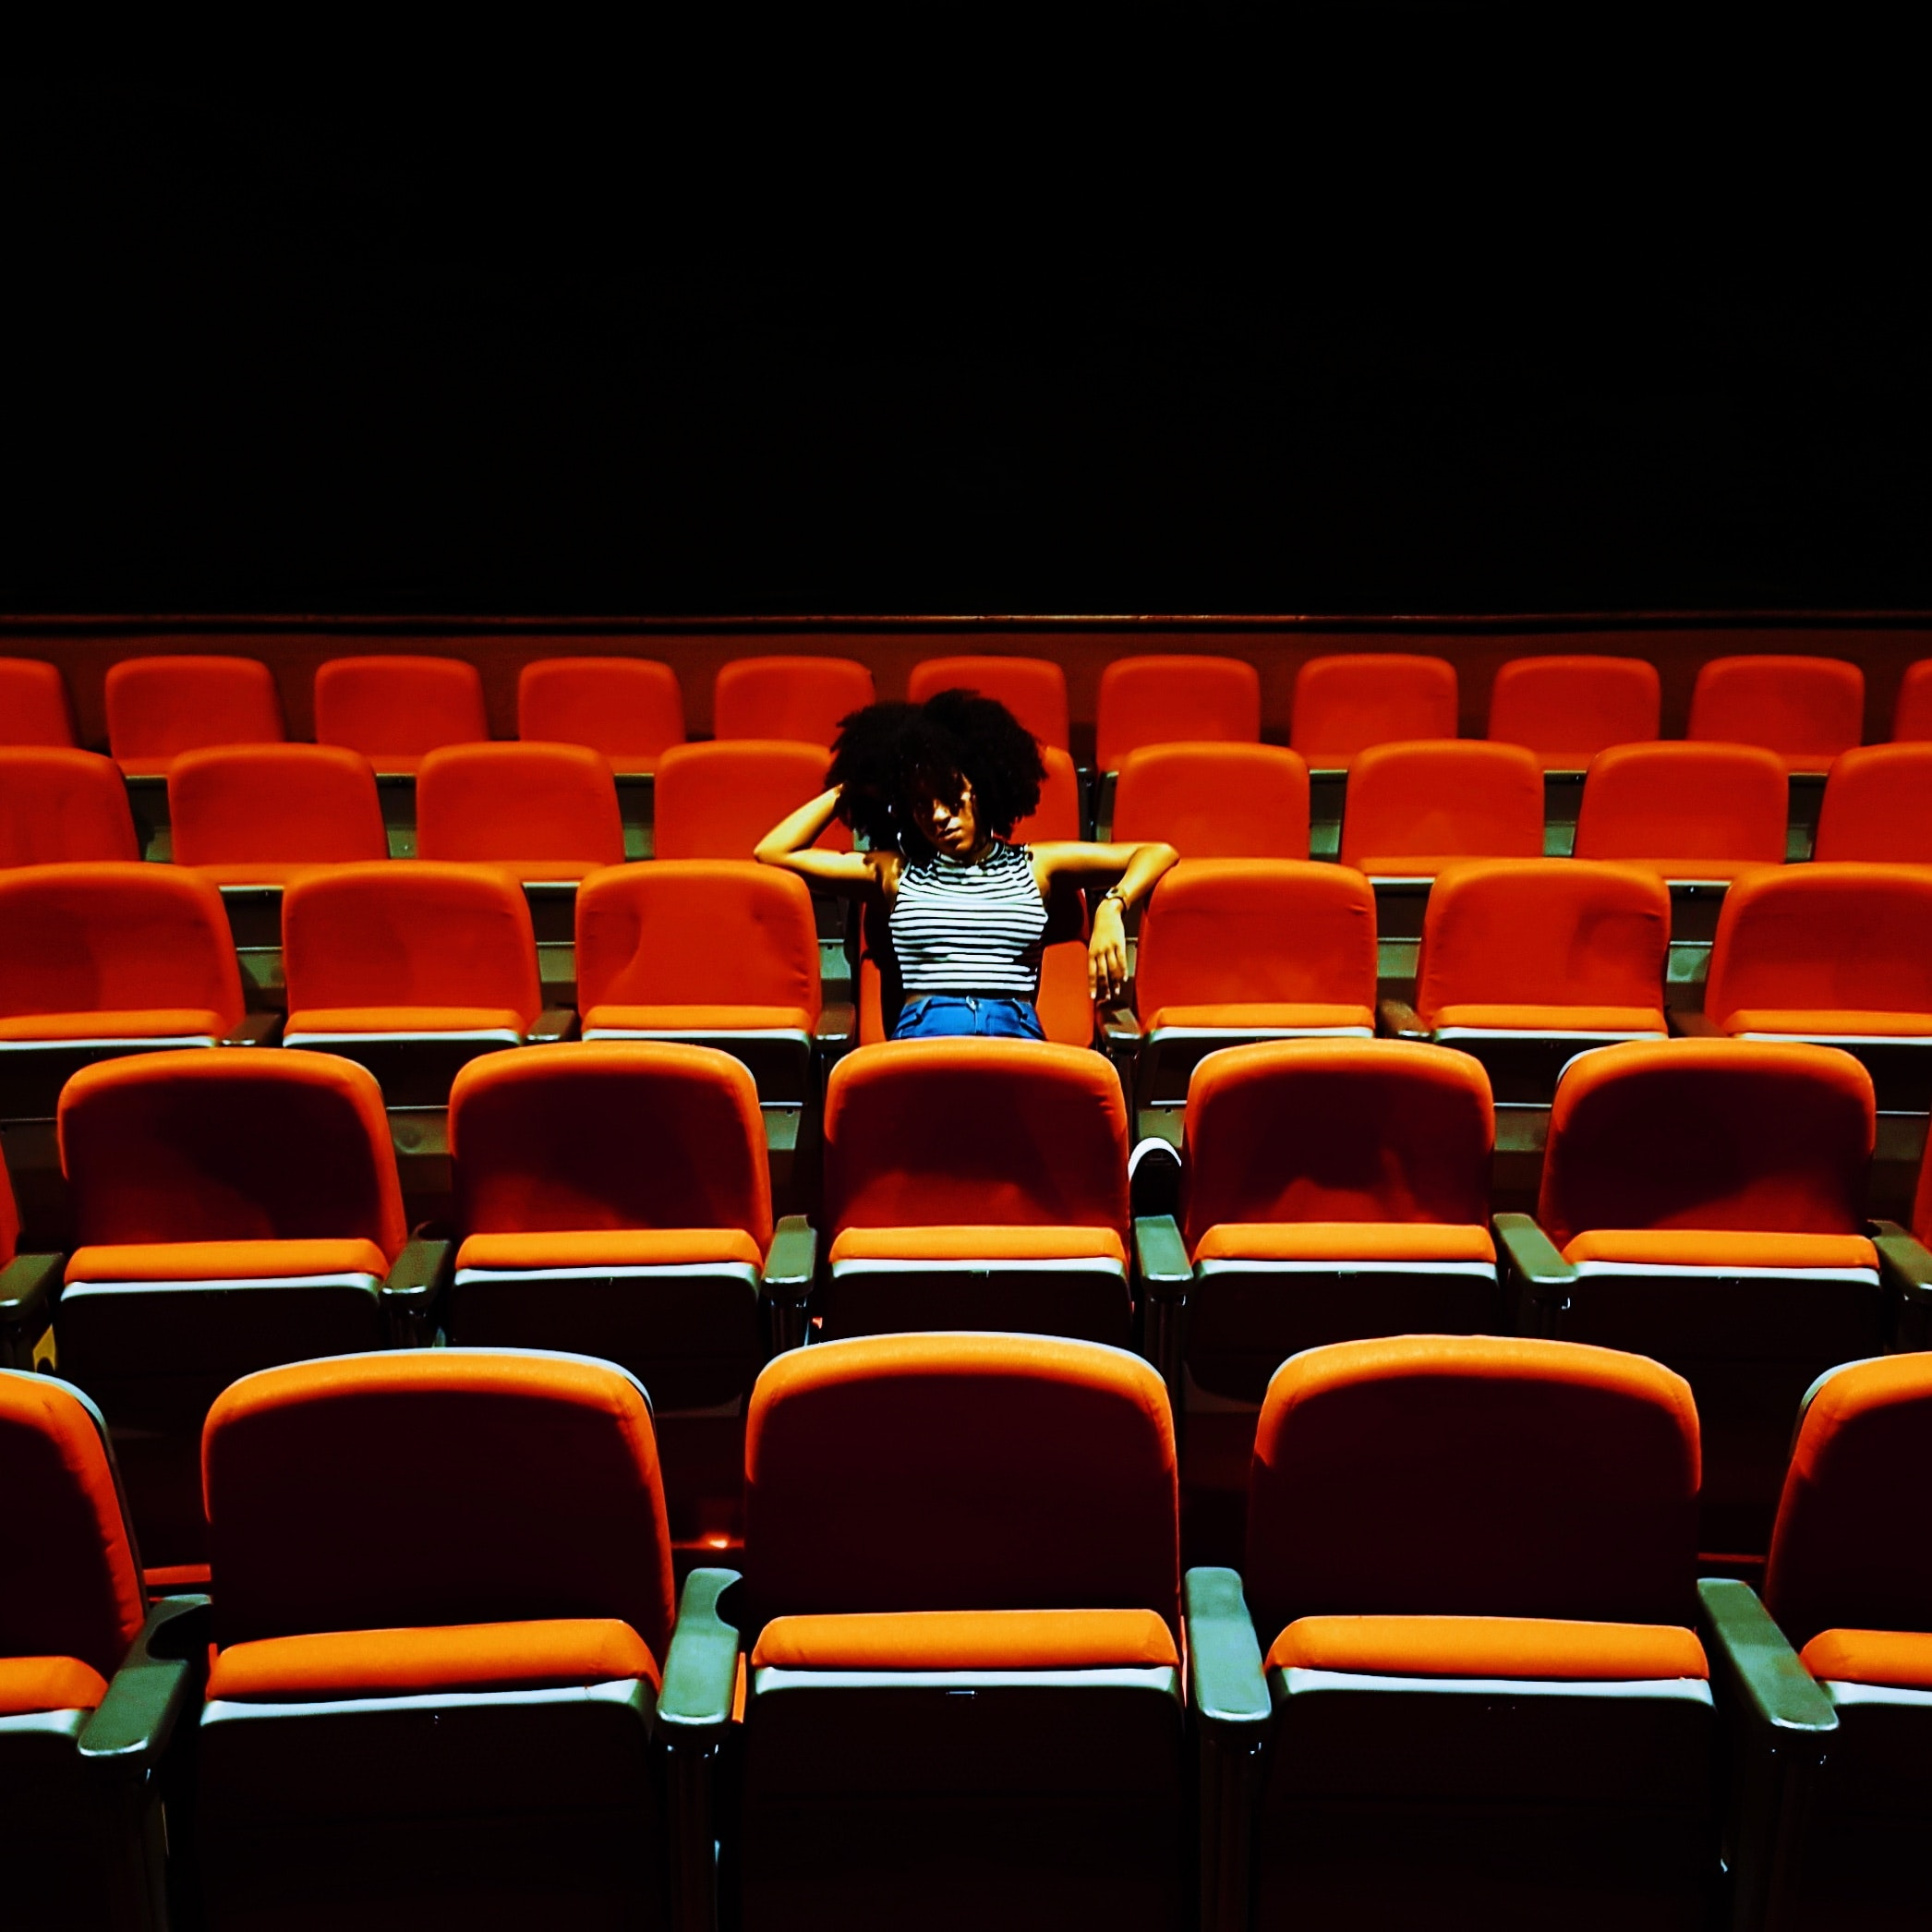 afro-alone-audience-1900339.jpg